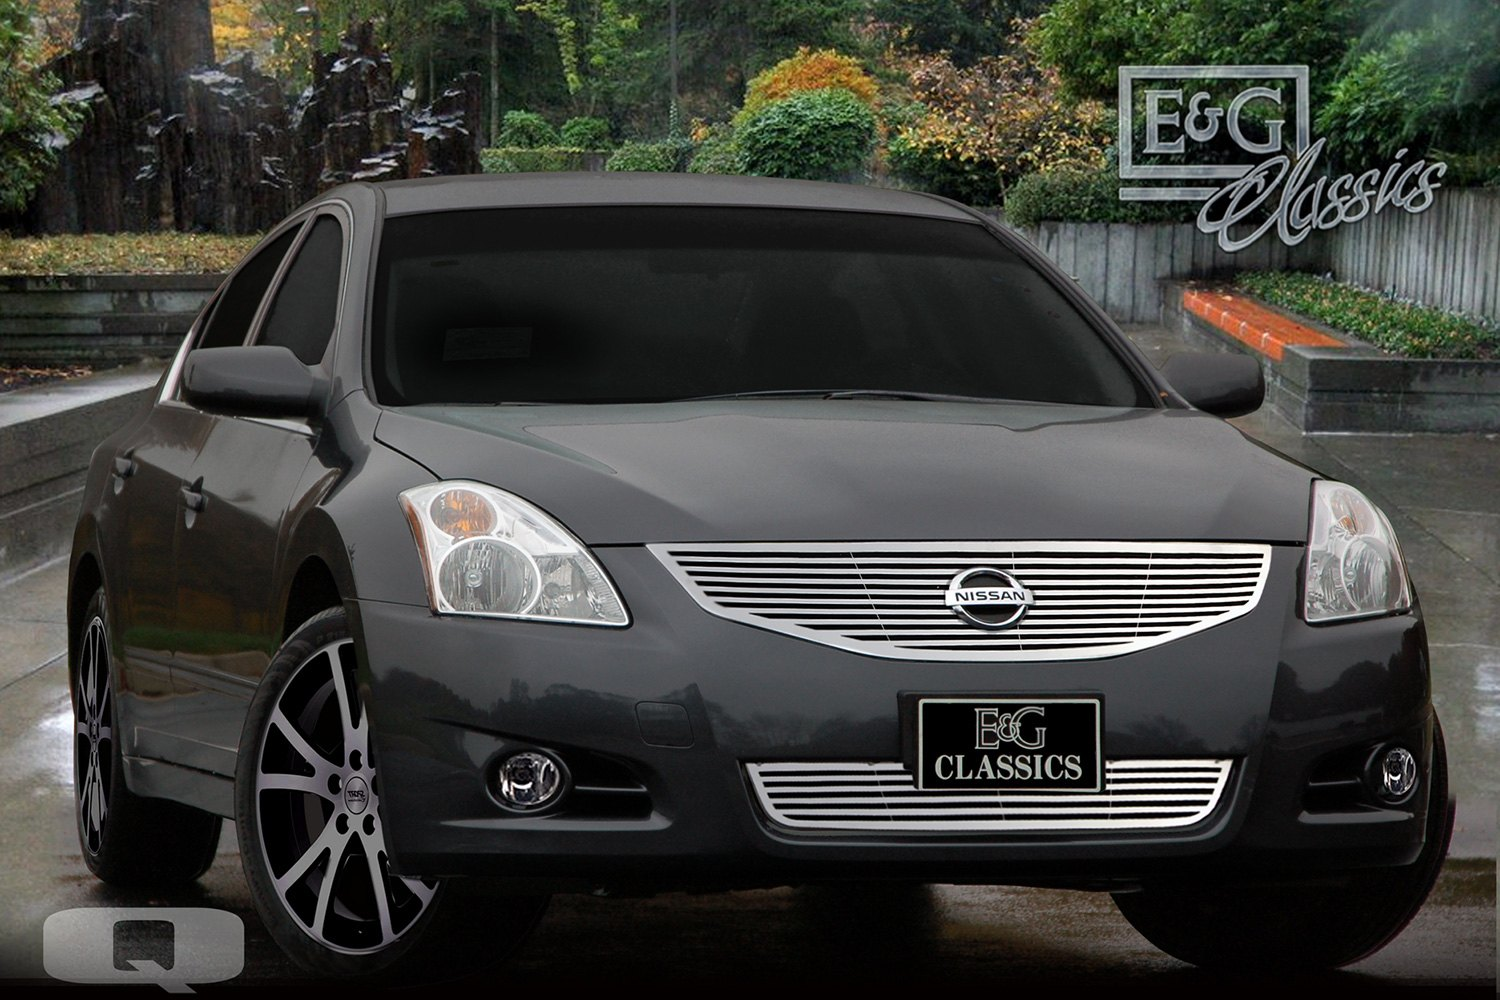 Used 2005 Nissan Altima Sedan Pricing Features Edmunds Upcomingcarshq Com